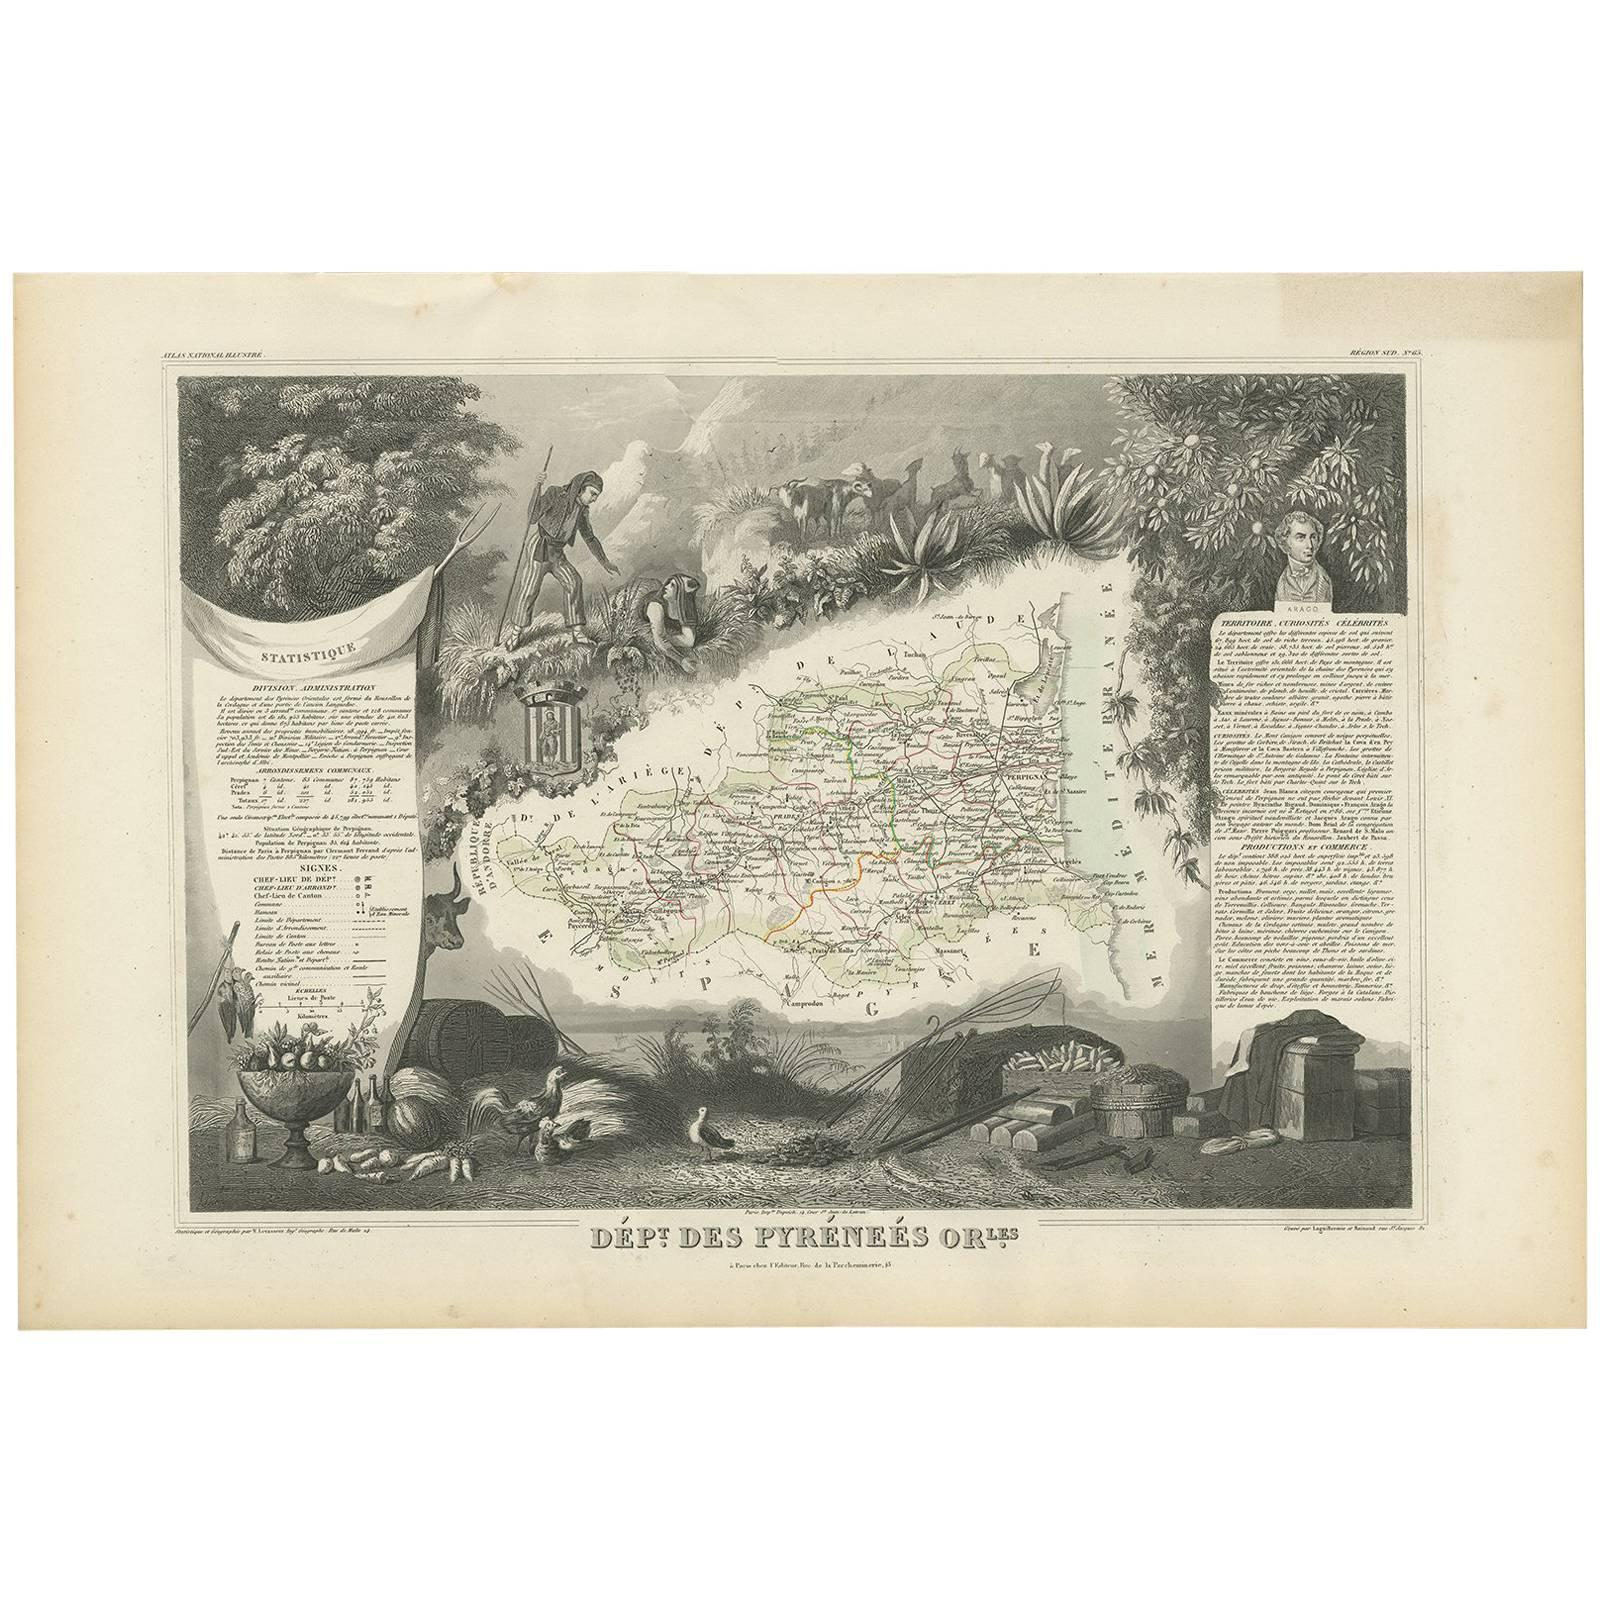 Antique Map of the Pyrenees Orientales 'France' by V. Levasseur, 1854